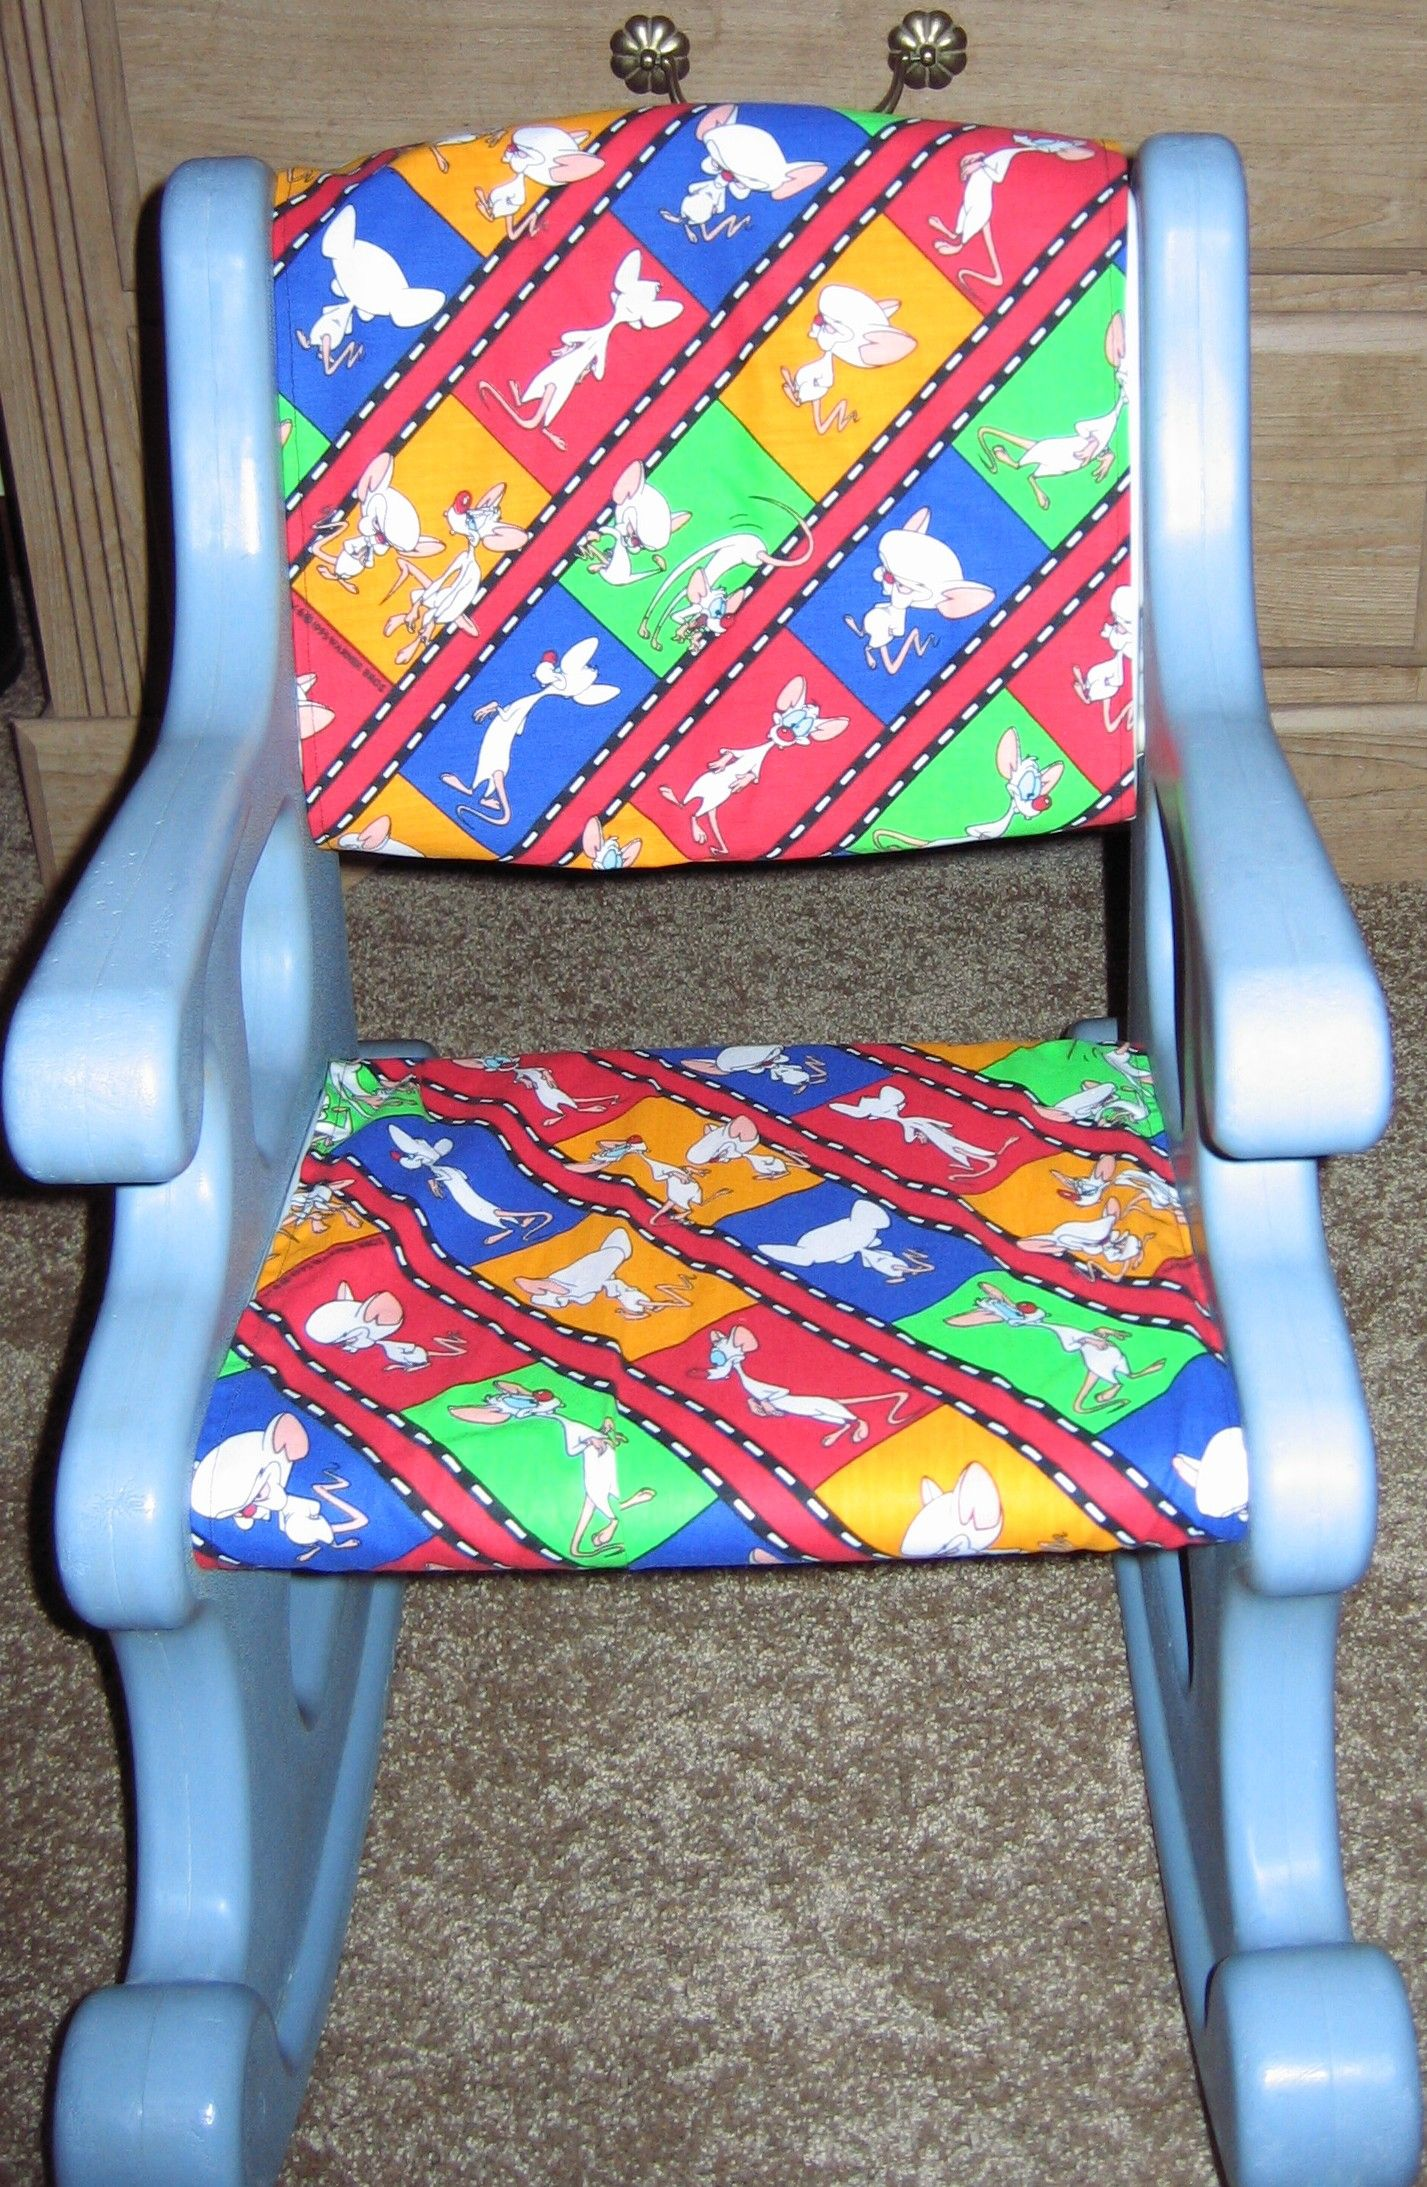 Terrific Little Tikes Rocking Chair Purchased At Consignment Store Dailytribune Chair Design For Home Dailytribuneorg